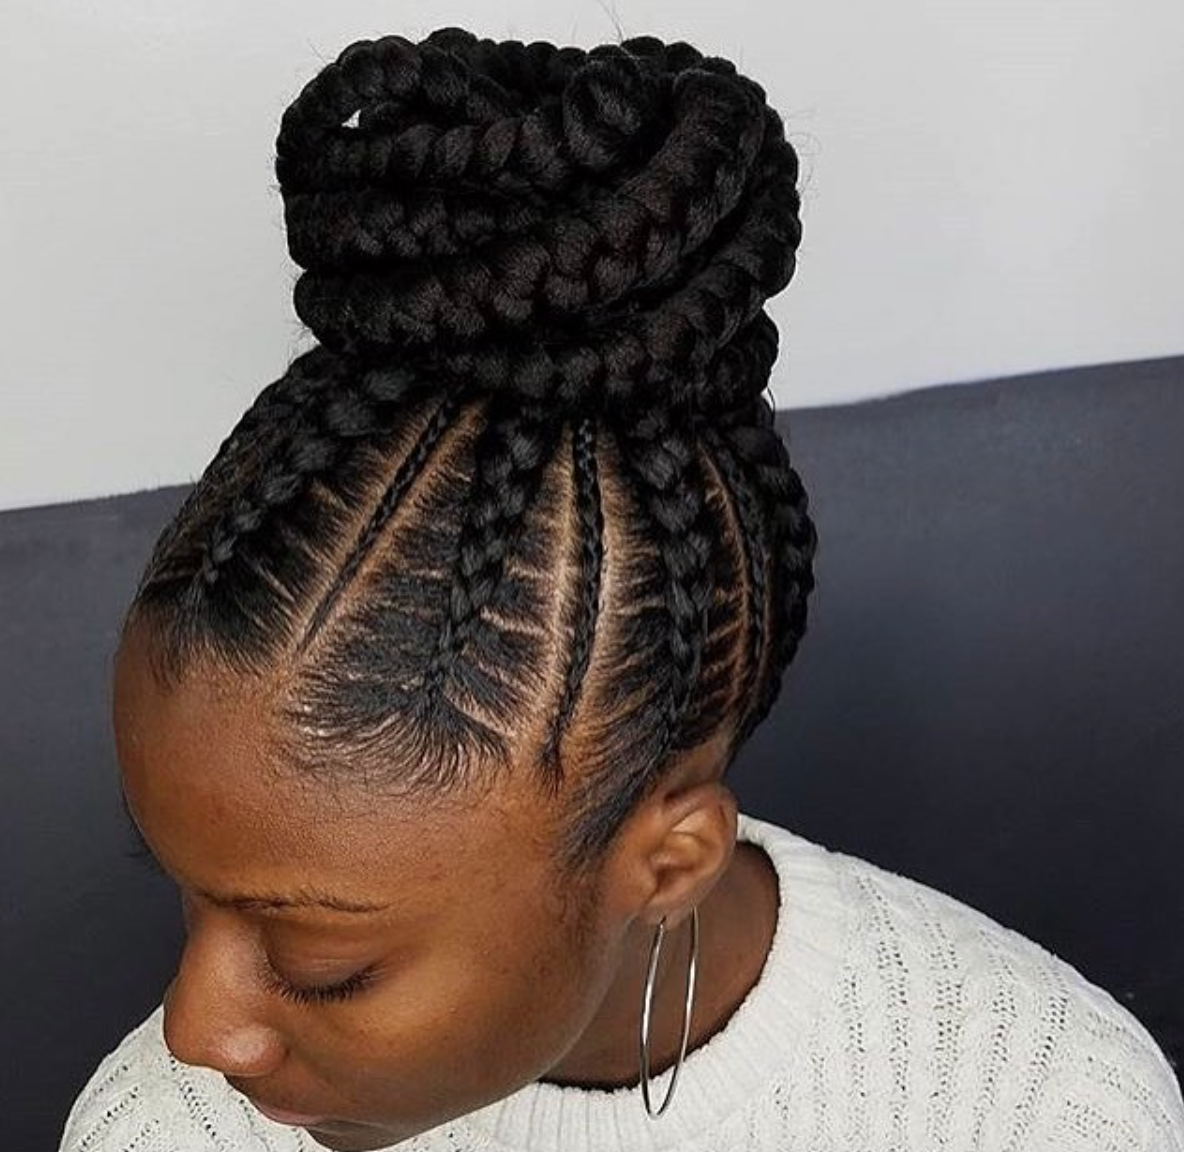 Popular Hairstyles Braids For Black Hair If You Re Seeking To Find The Best Hair For Your Own Hair It Hair Puff Natural Hair Bun Styles Natural Hair Styles